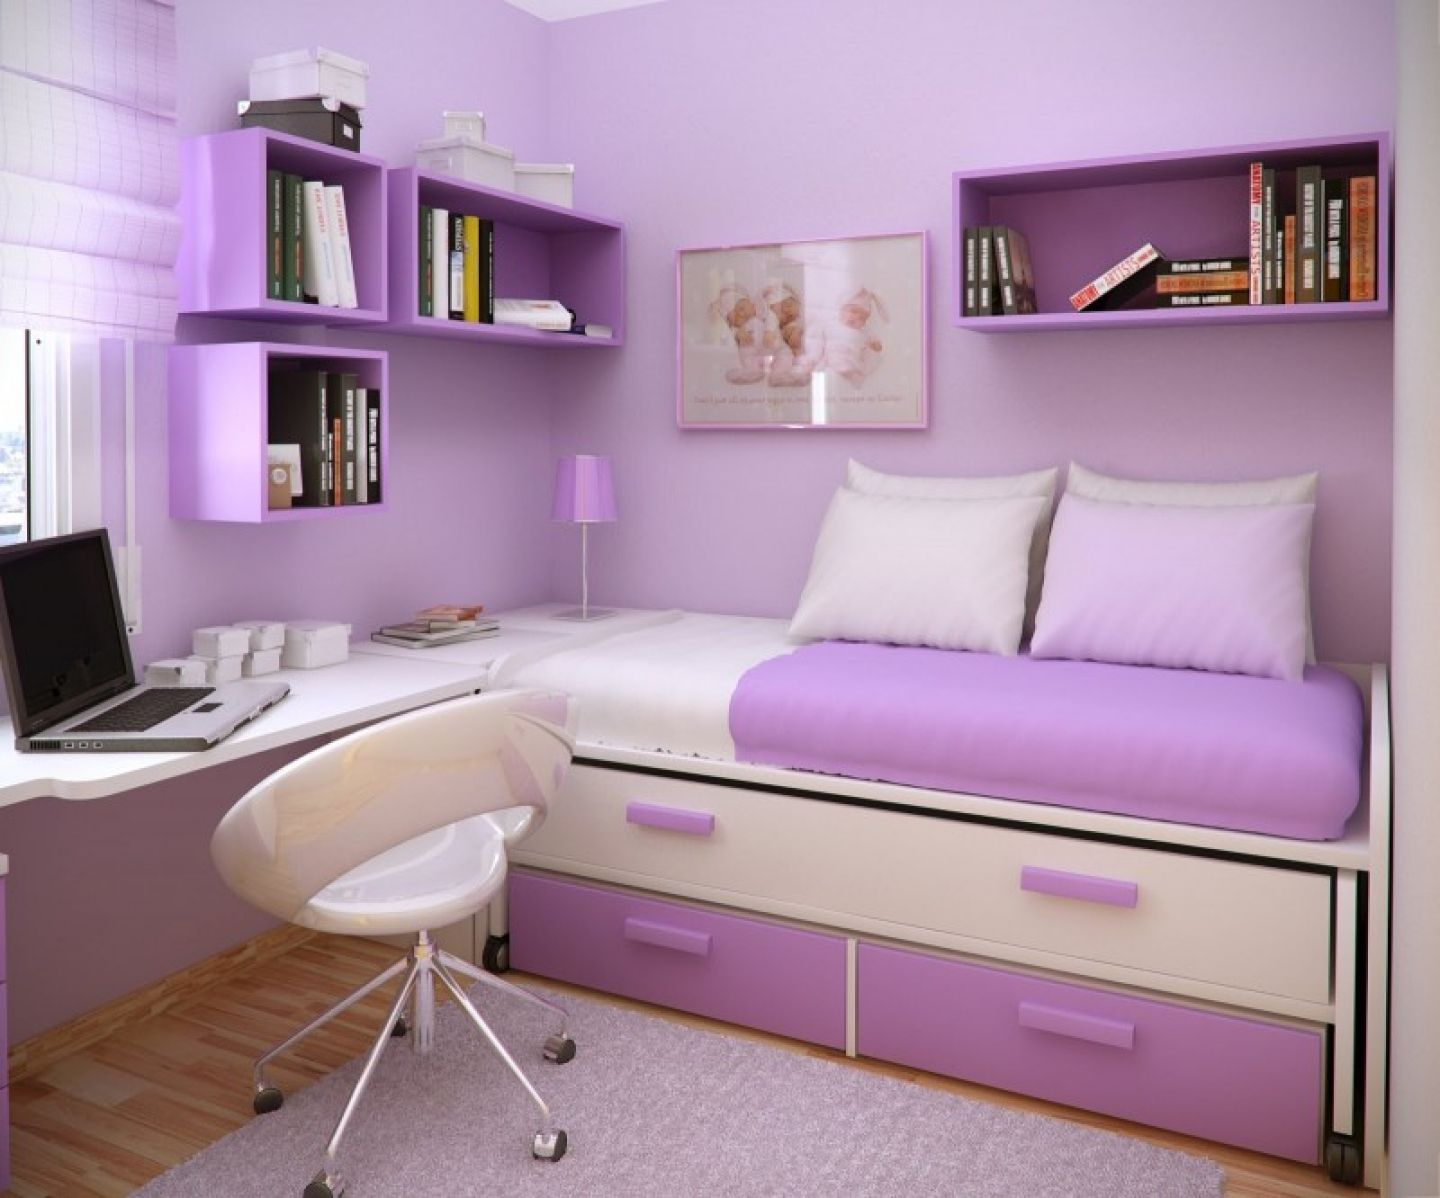 Ideas For Small Girls Bedroom Part - 30: Space Saving For Kids Small Bedroom Design Ideas By Sergi Mengot Purple  Minimalist Furniture In Small Girls Bedroom Design Idea By Sergi Mengot U2013  Home ...